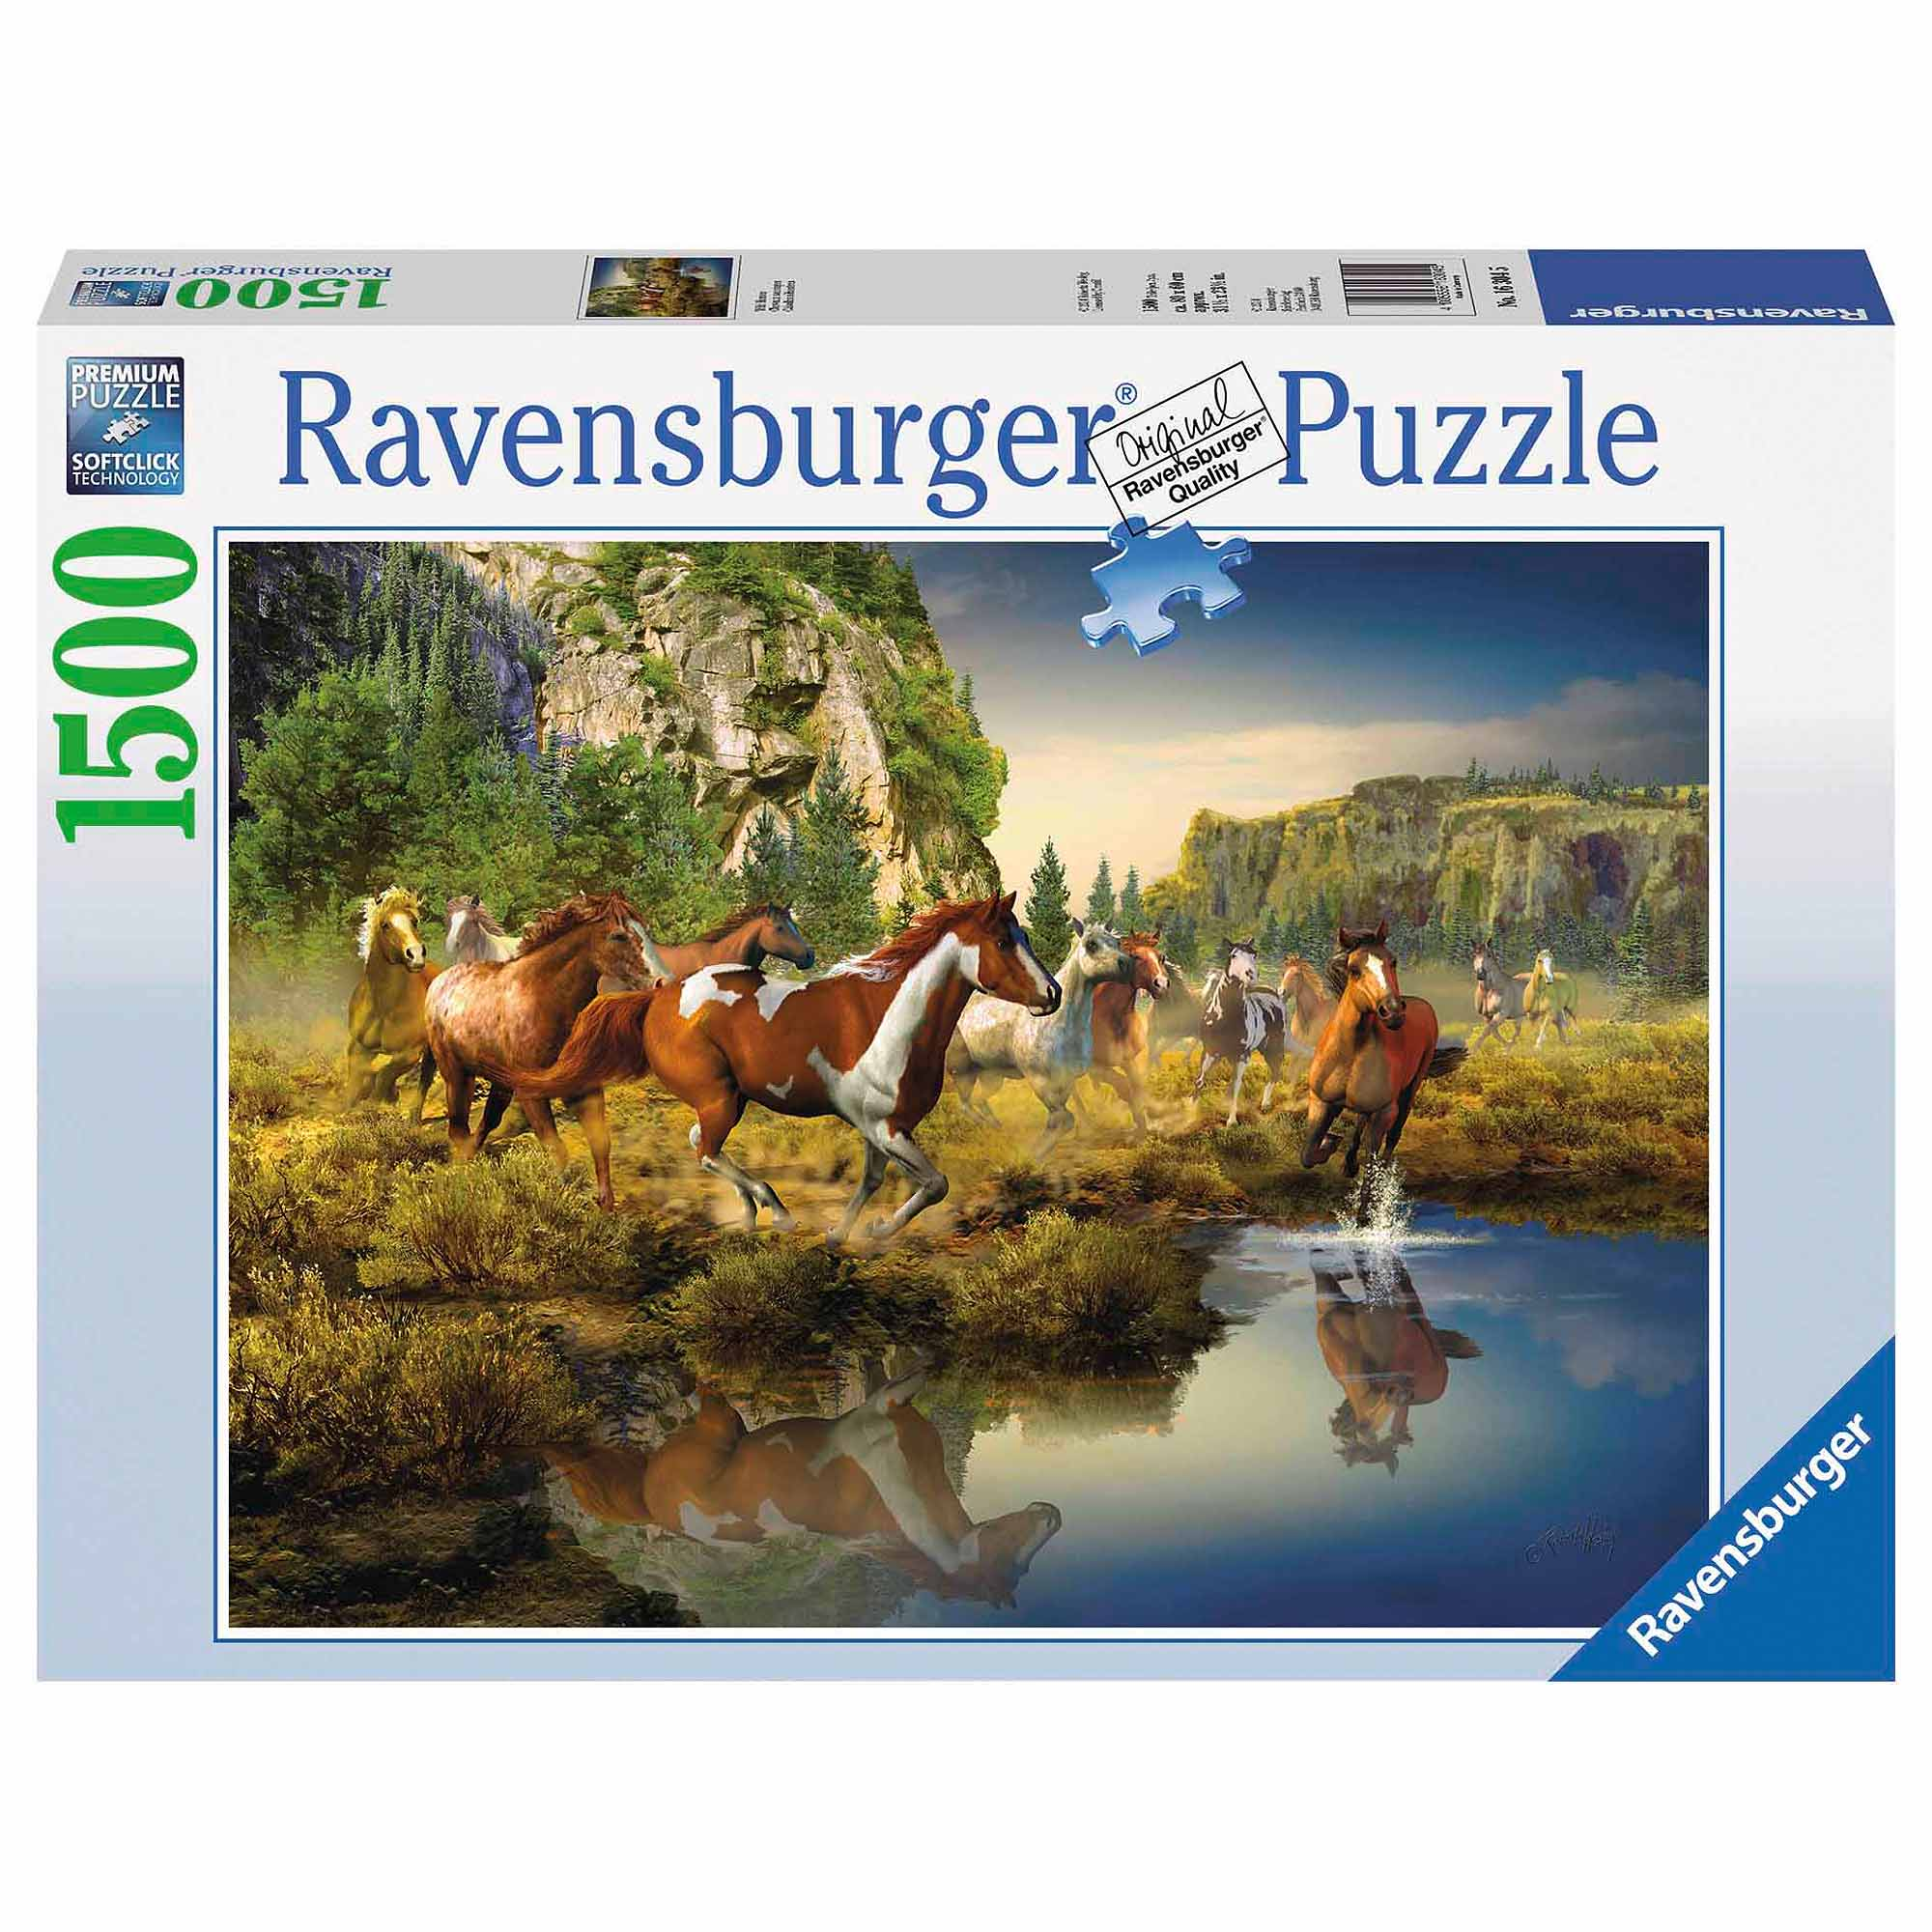 Wild Horses Puzzle, 1,500 Pieces by Ravensburger